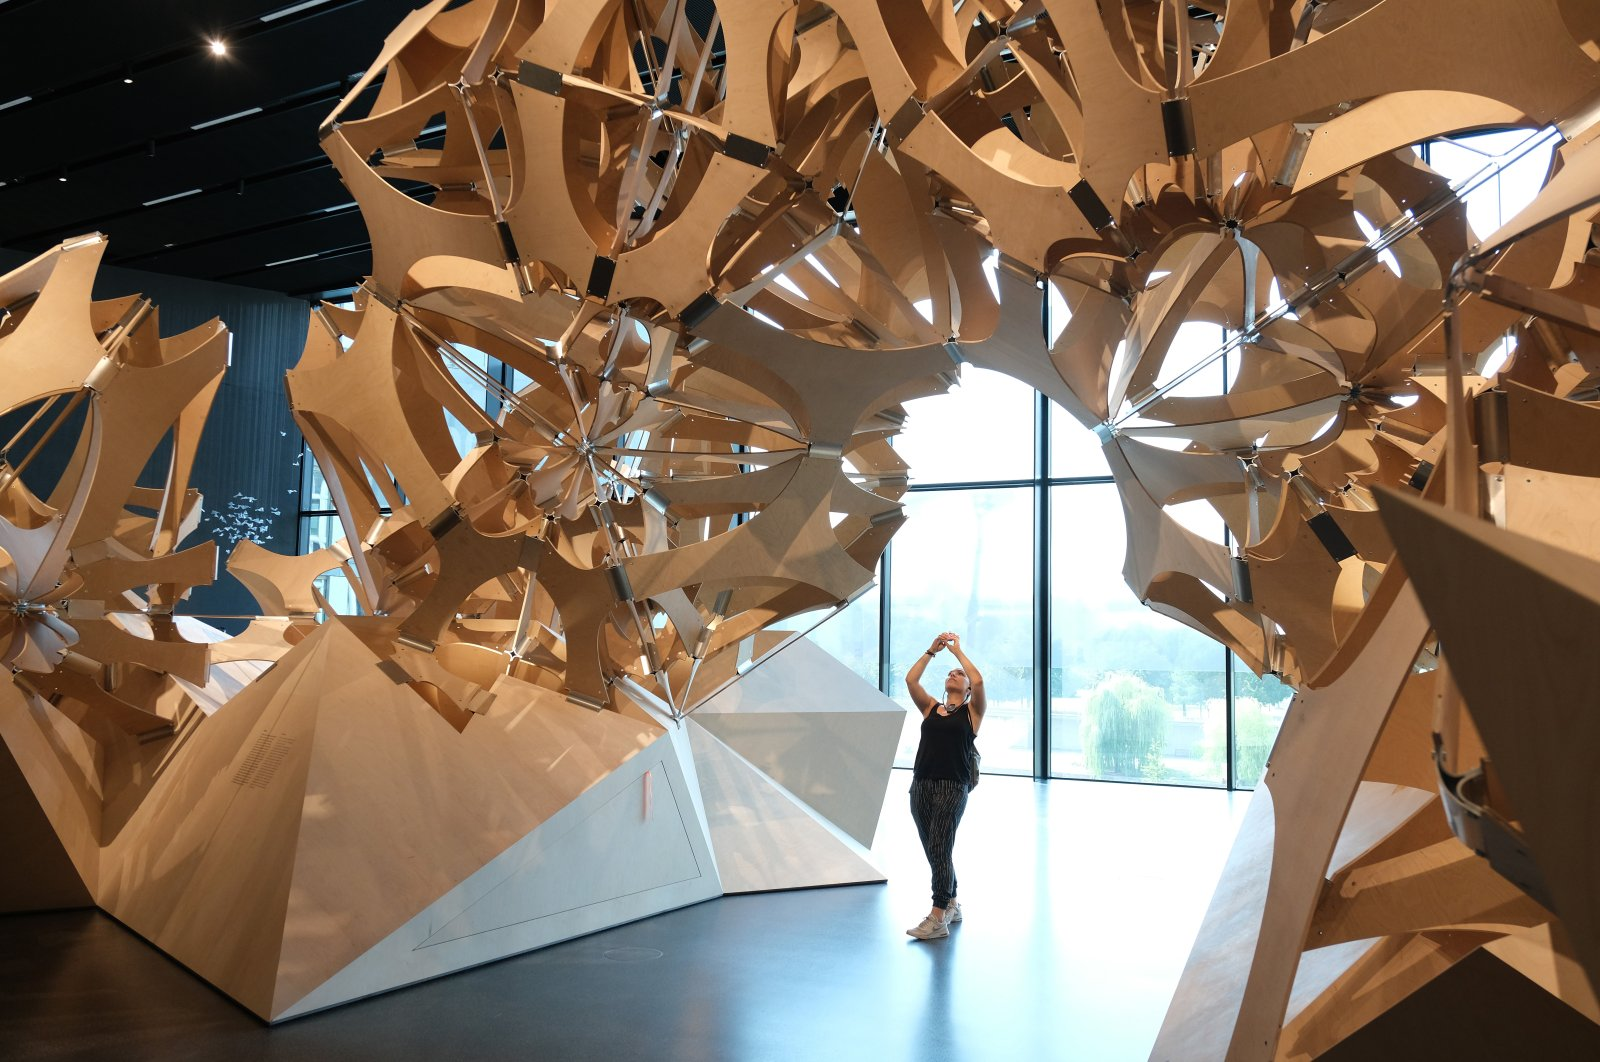 A visitor photographs a wooden sculpture made of over 6,000 parts and meant to depict the complexity of nature during a press preview at the new Futurium museum in the city center in Berlin, Germany, Aug. 27, 2019. (Getty Images)